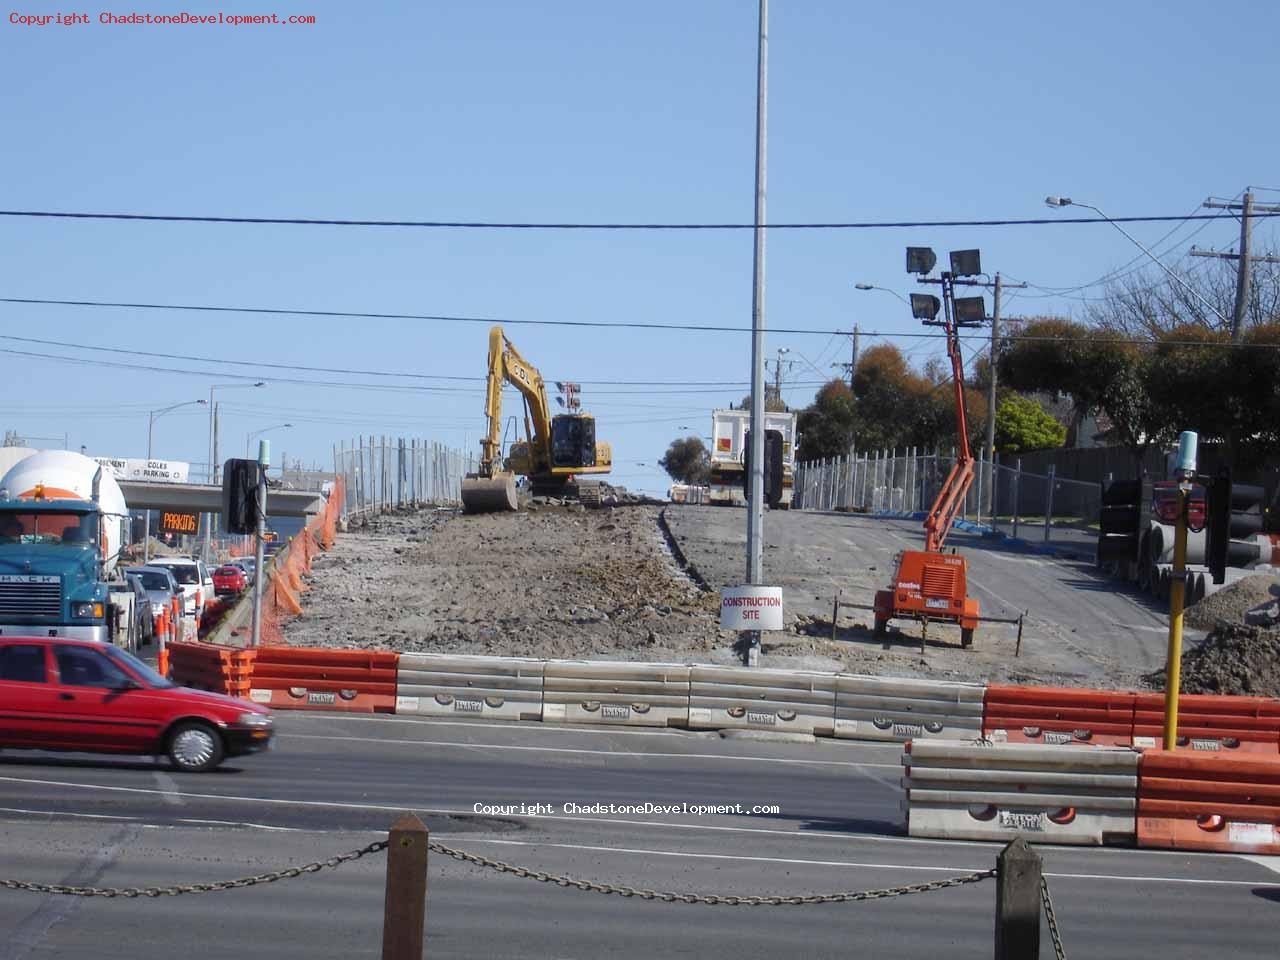 Half of the old Middle rd bitumen has been dug up - Chadstone Development Discussions